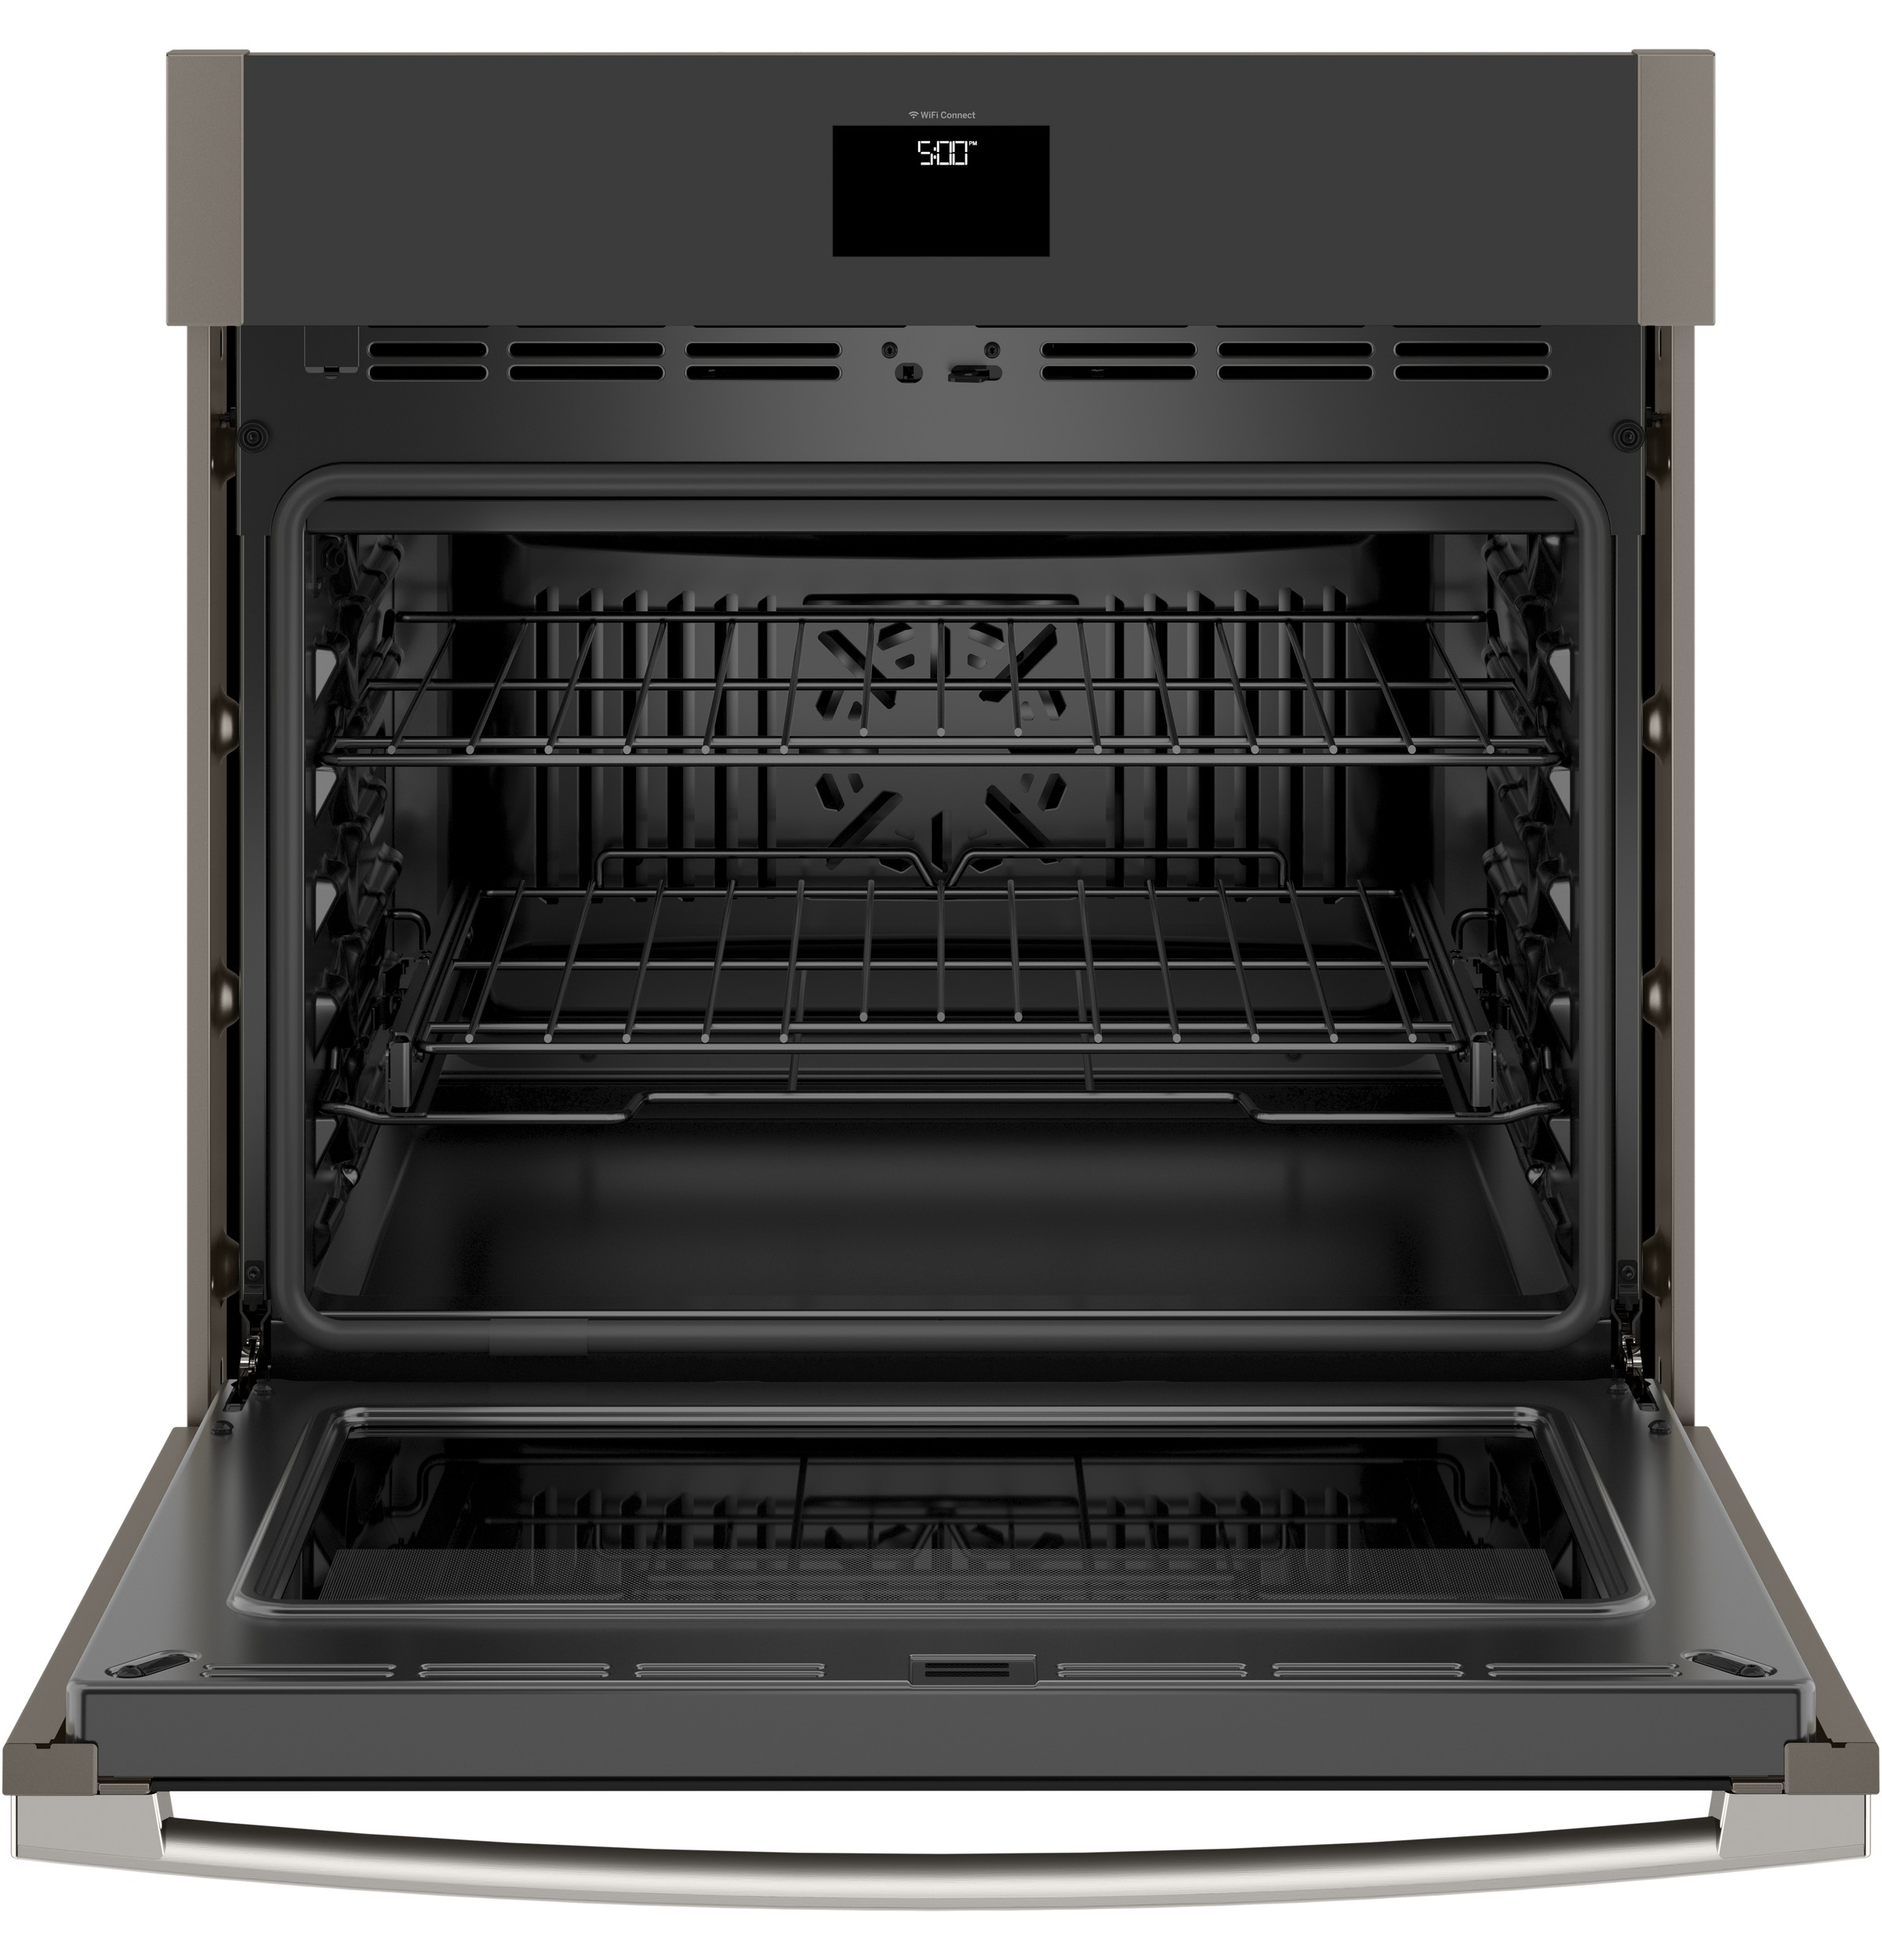 "Model: JTS5000ENES | GE GE® 30"" Smart Built-In Self-Clean Convection Single Wall Oven with Never Scrub Racks"